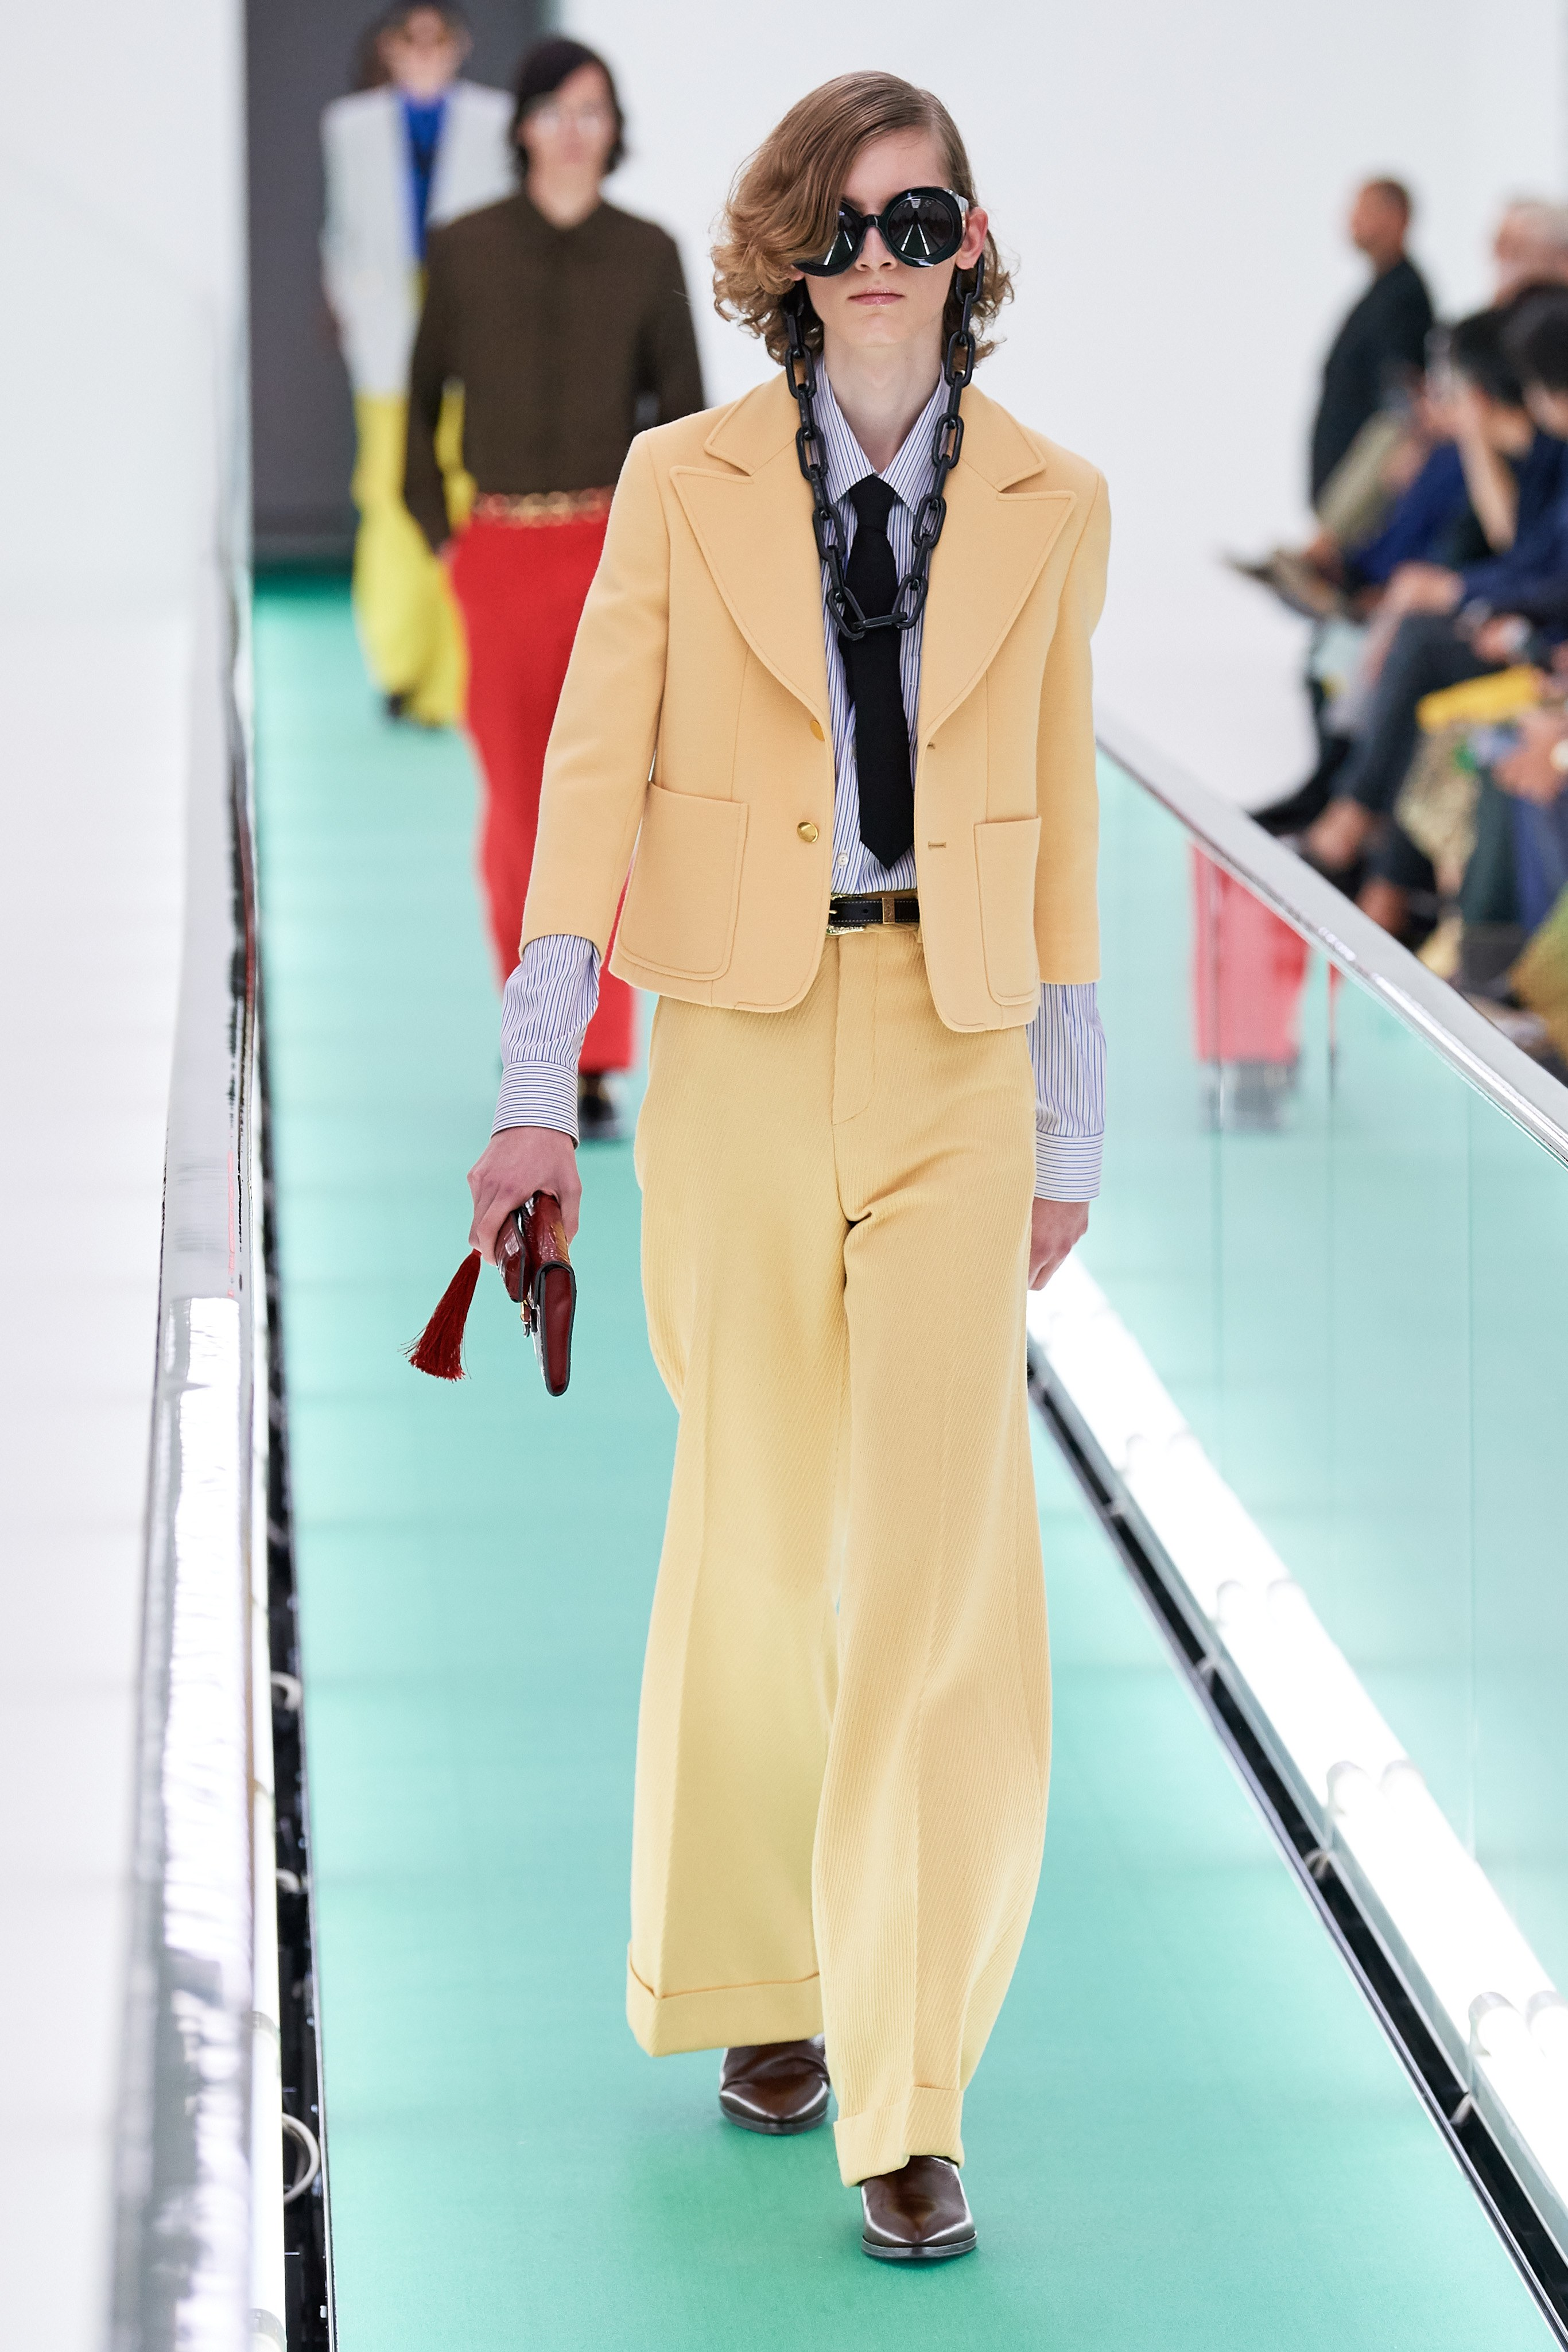 gucci spring 2020 ready to wear Alessandro Michele Milan Fashion Week